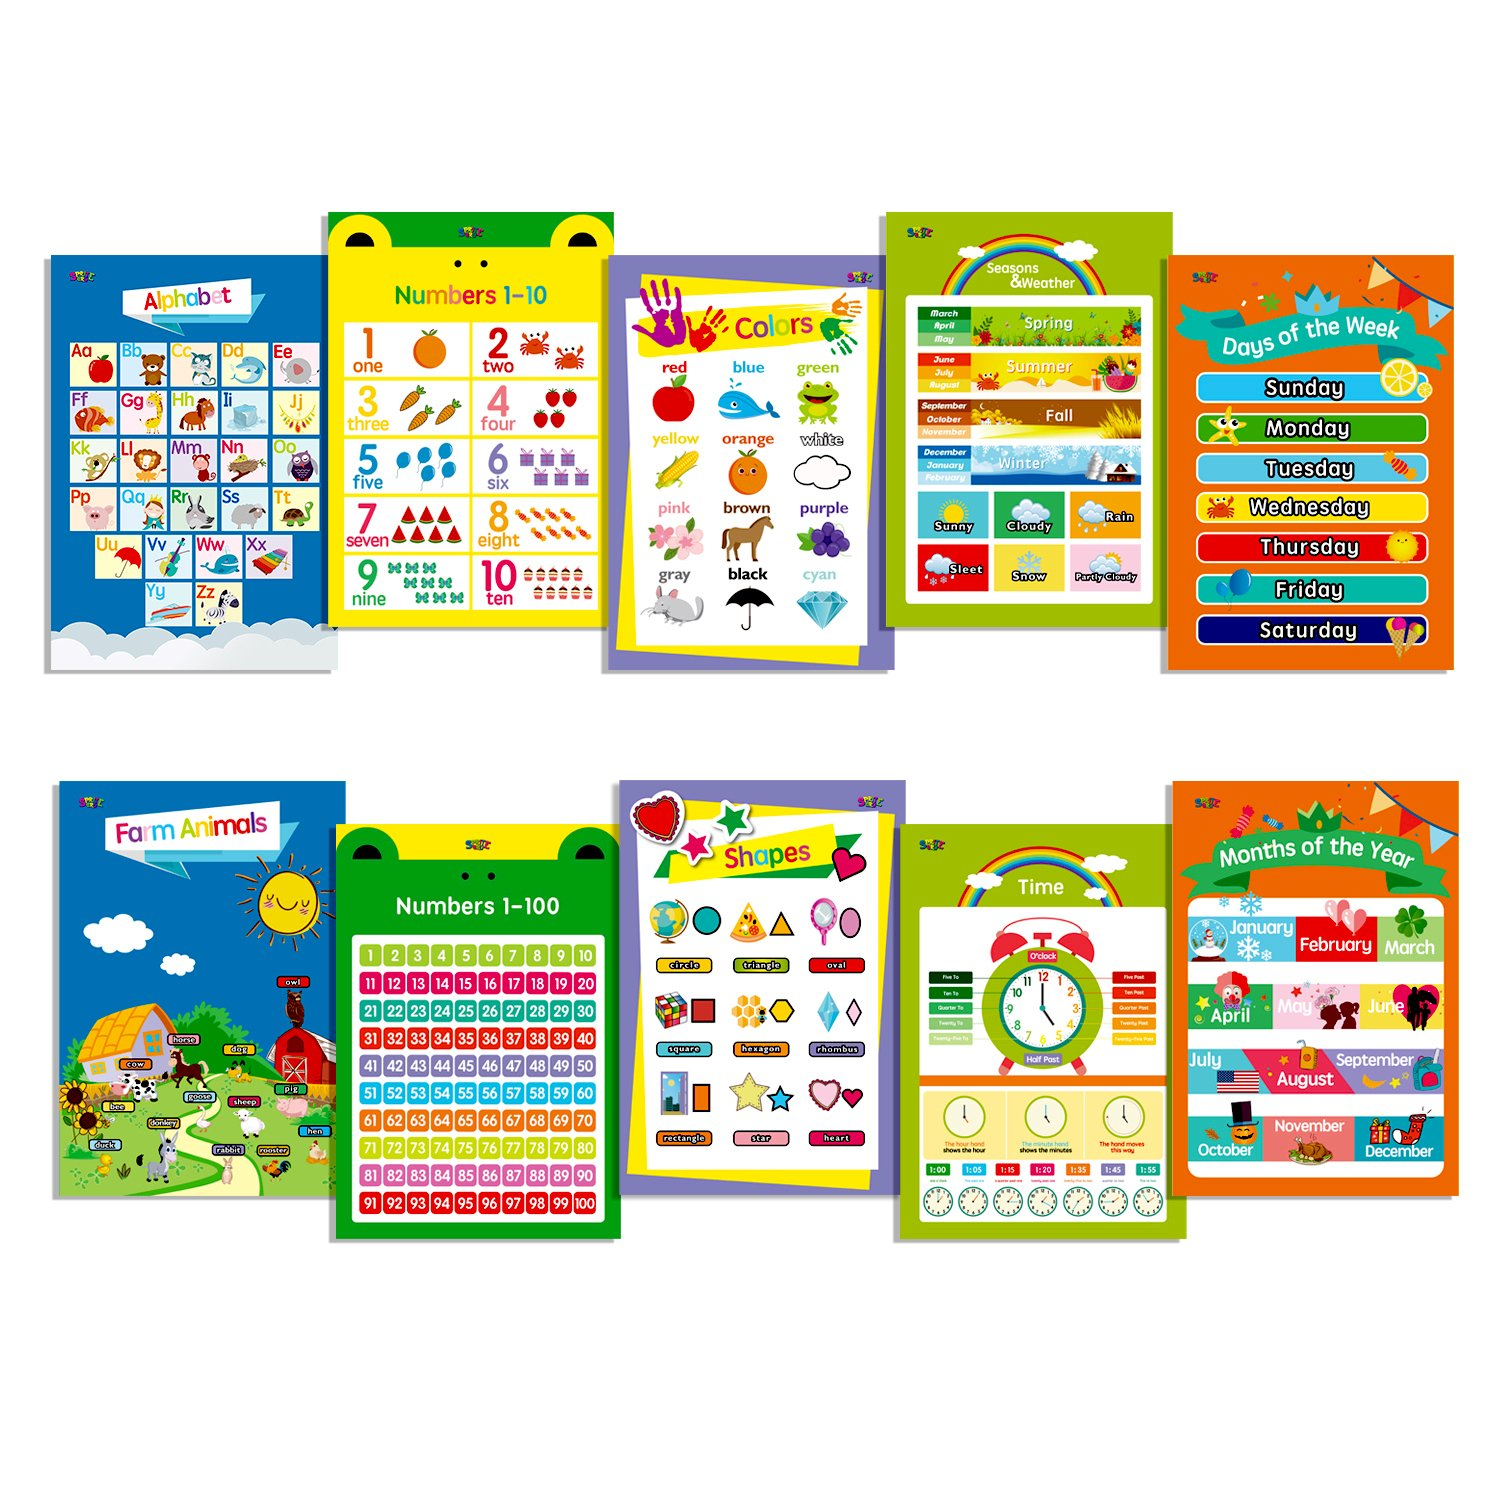 "10 Educational Posters für Toddlers,13"" X 19"",Includes: Alphabet, Farm Animals, Colors, Shapes, Days von die Week, Months von die Year,Number 1-10,Numbers 1-100,Seasons&Weather,Time"